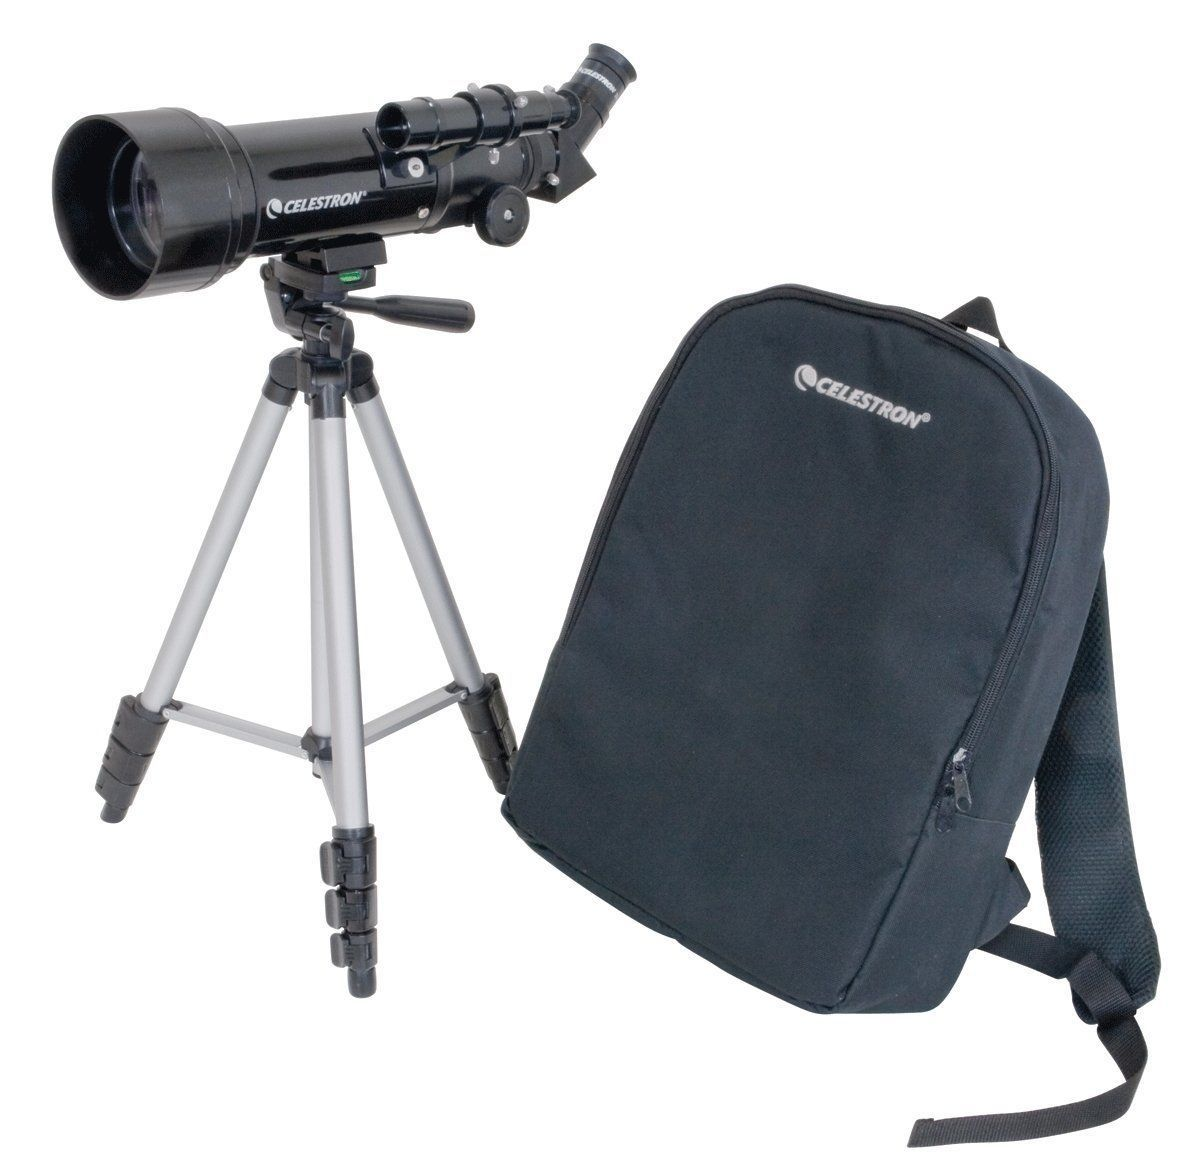 70mm Travel Scope Telescope Tripod Backpack Outdoor Camping Hiking Stargazing